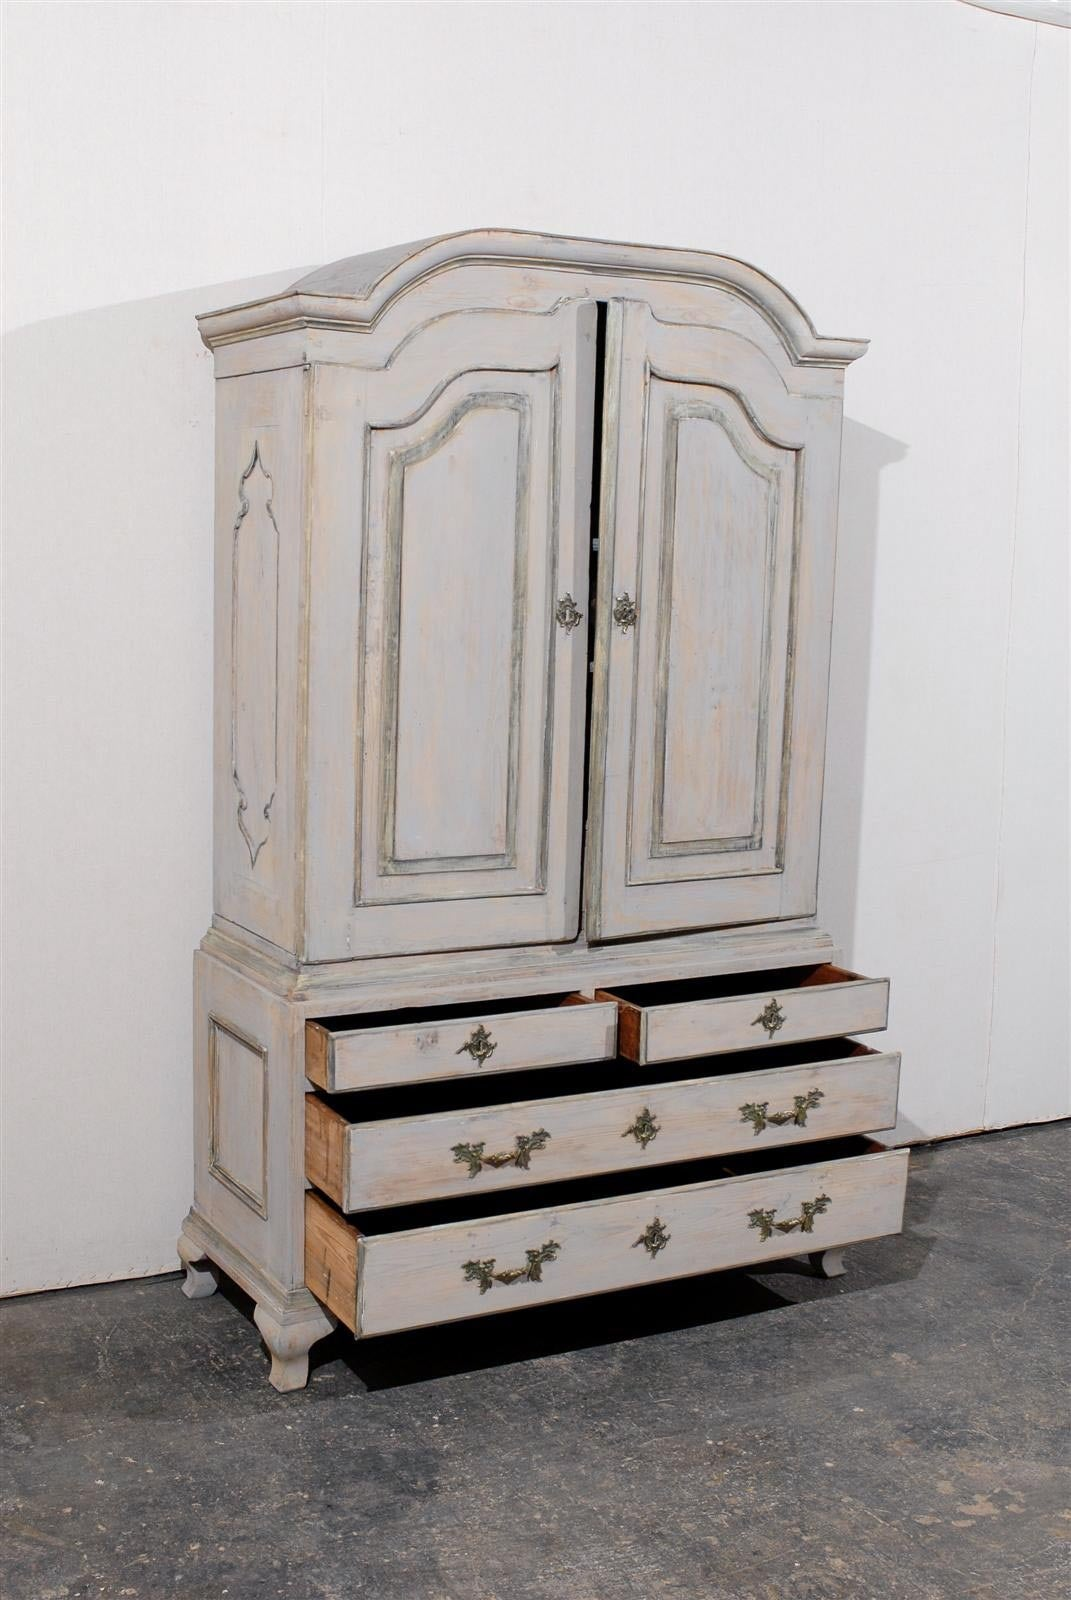 18th Century and Earlier Late 18th Century Swedish Period Rococo Painted Wood Cabinet For Sale